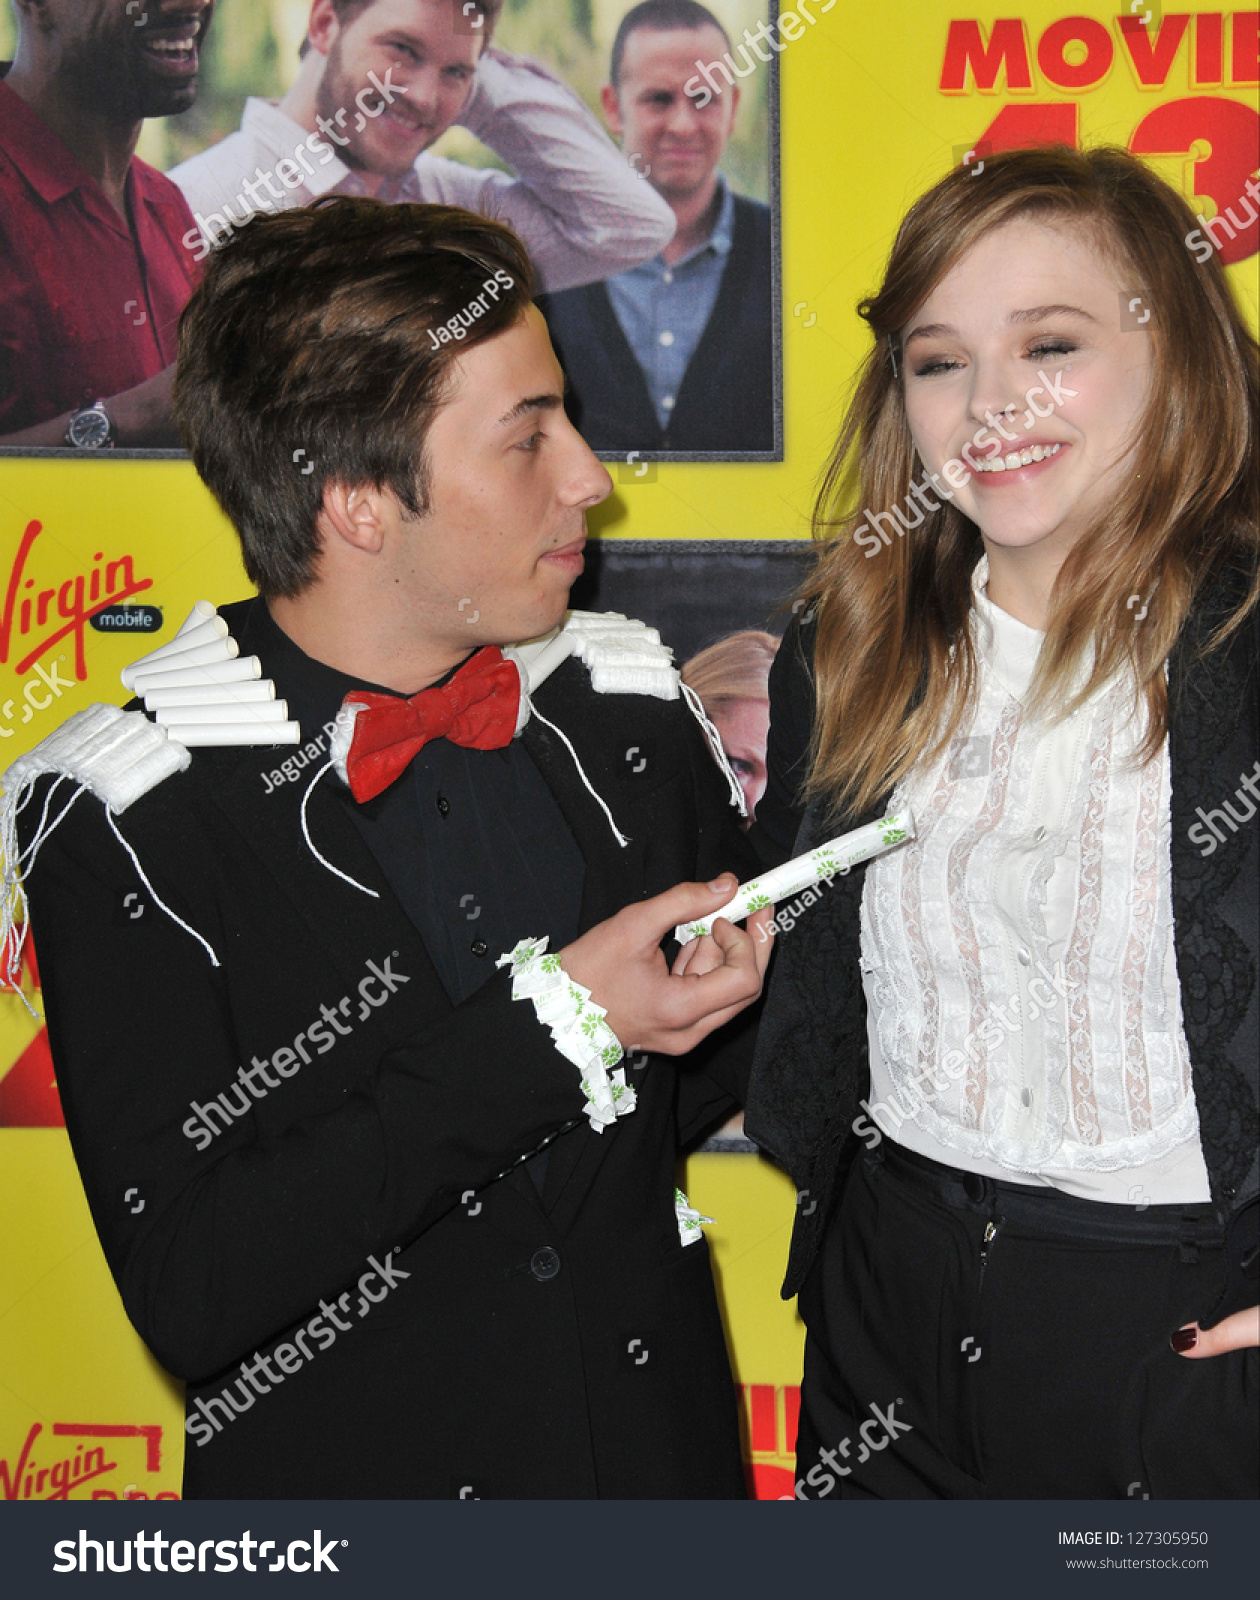 Jimmy Bennett and Chloe Grace Moretz Photos Photos ... |Chloe Grace Moretz And Jimmy Bennett